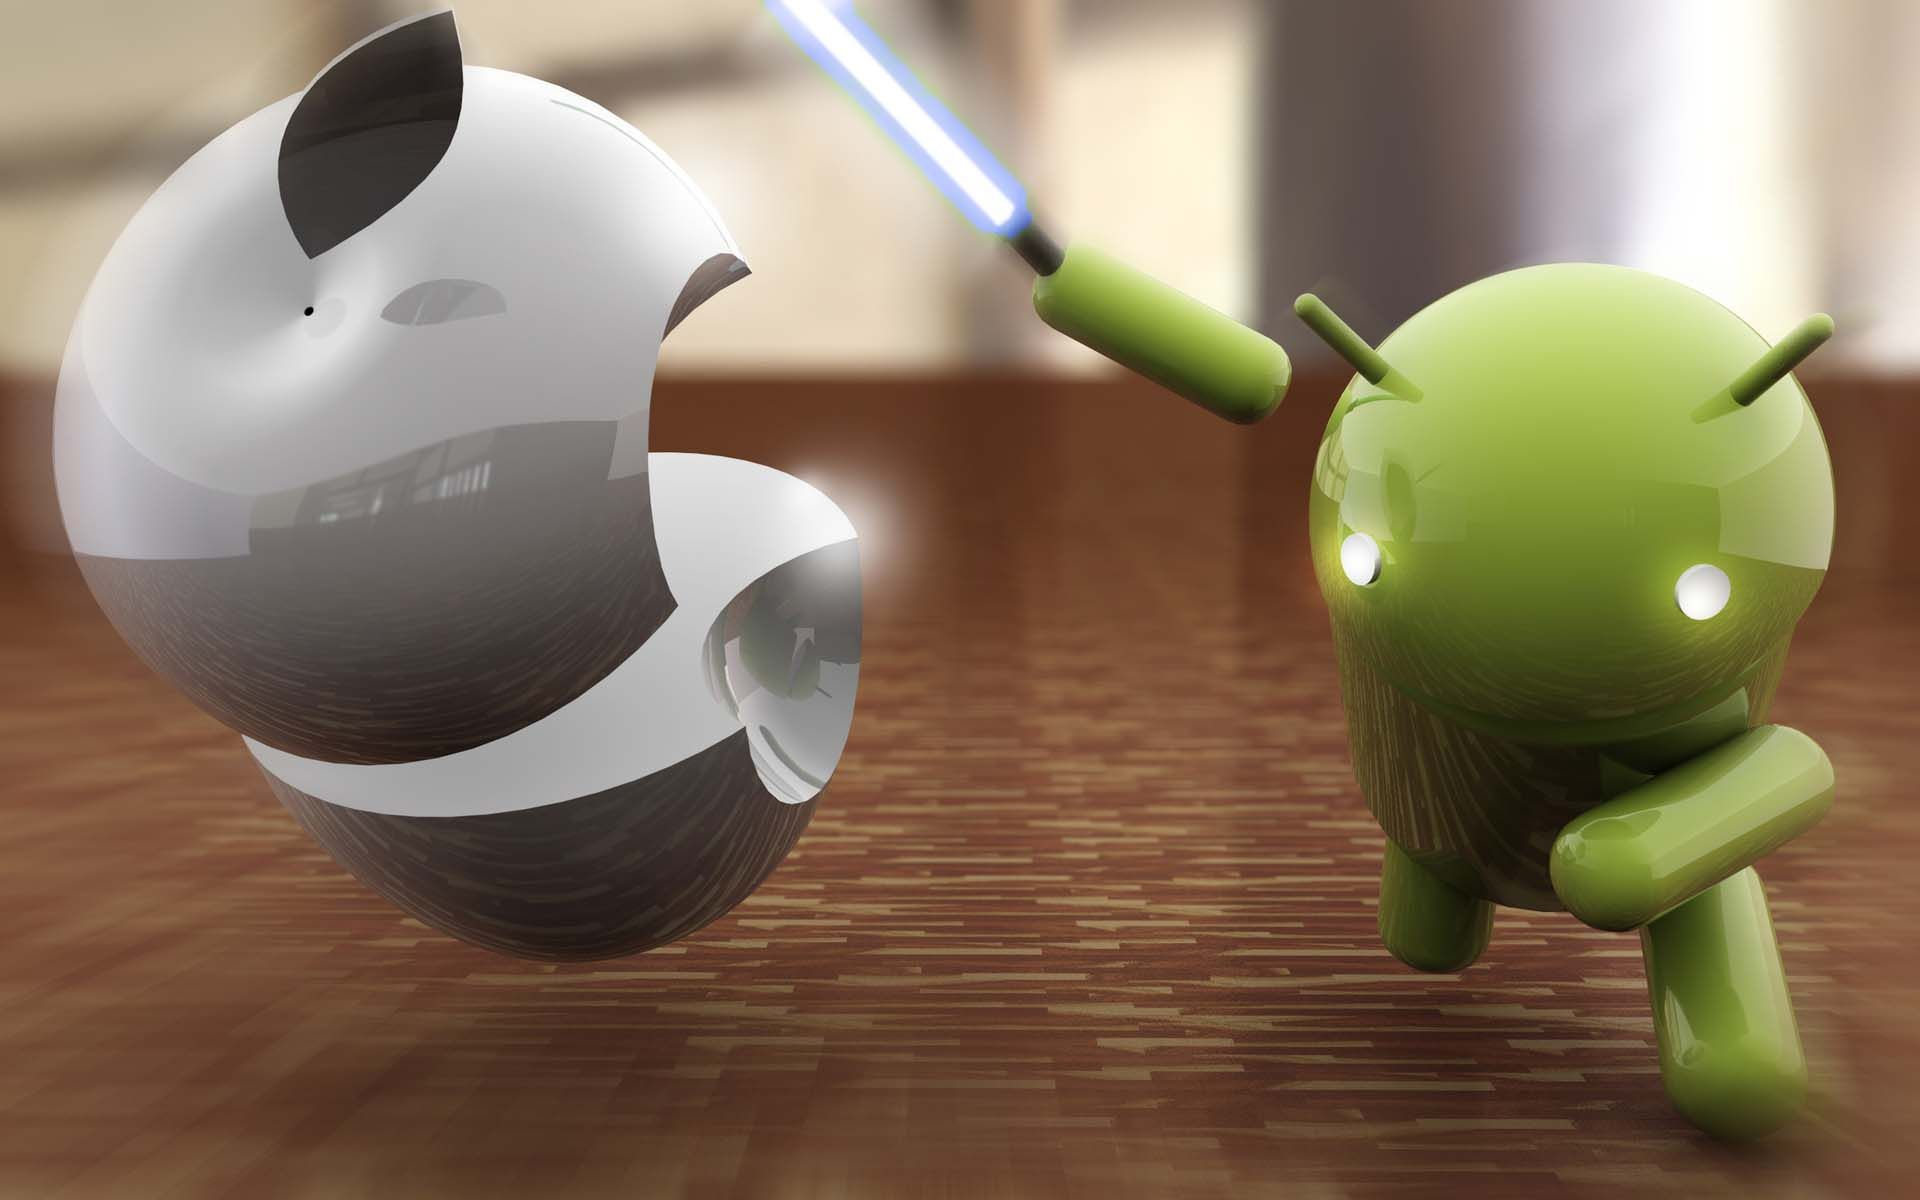 varias cosas que no sabes de android | android, mobile smartphone